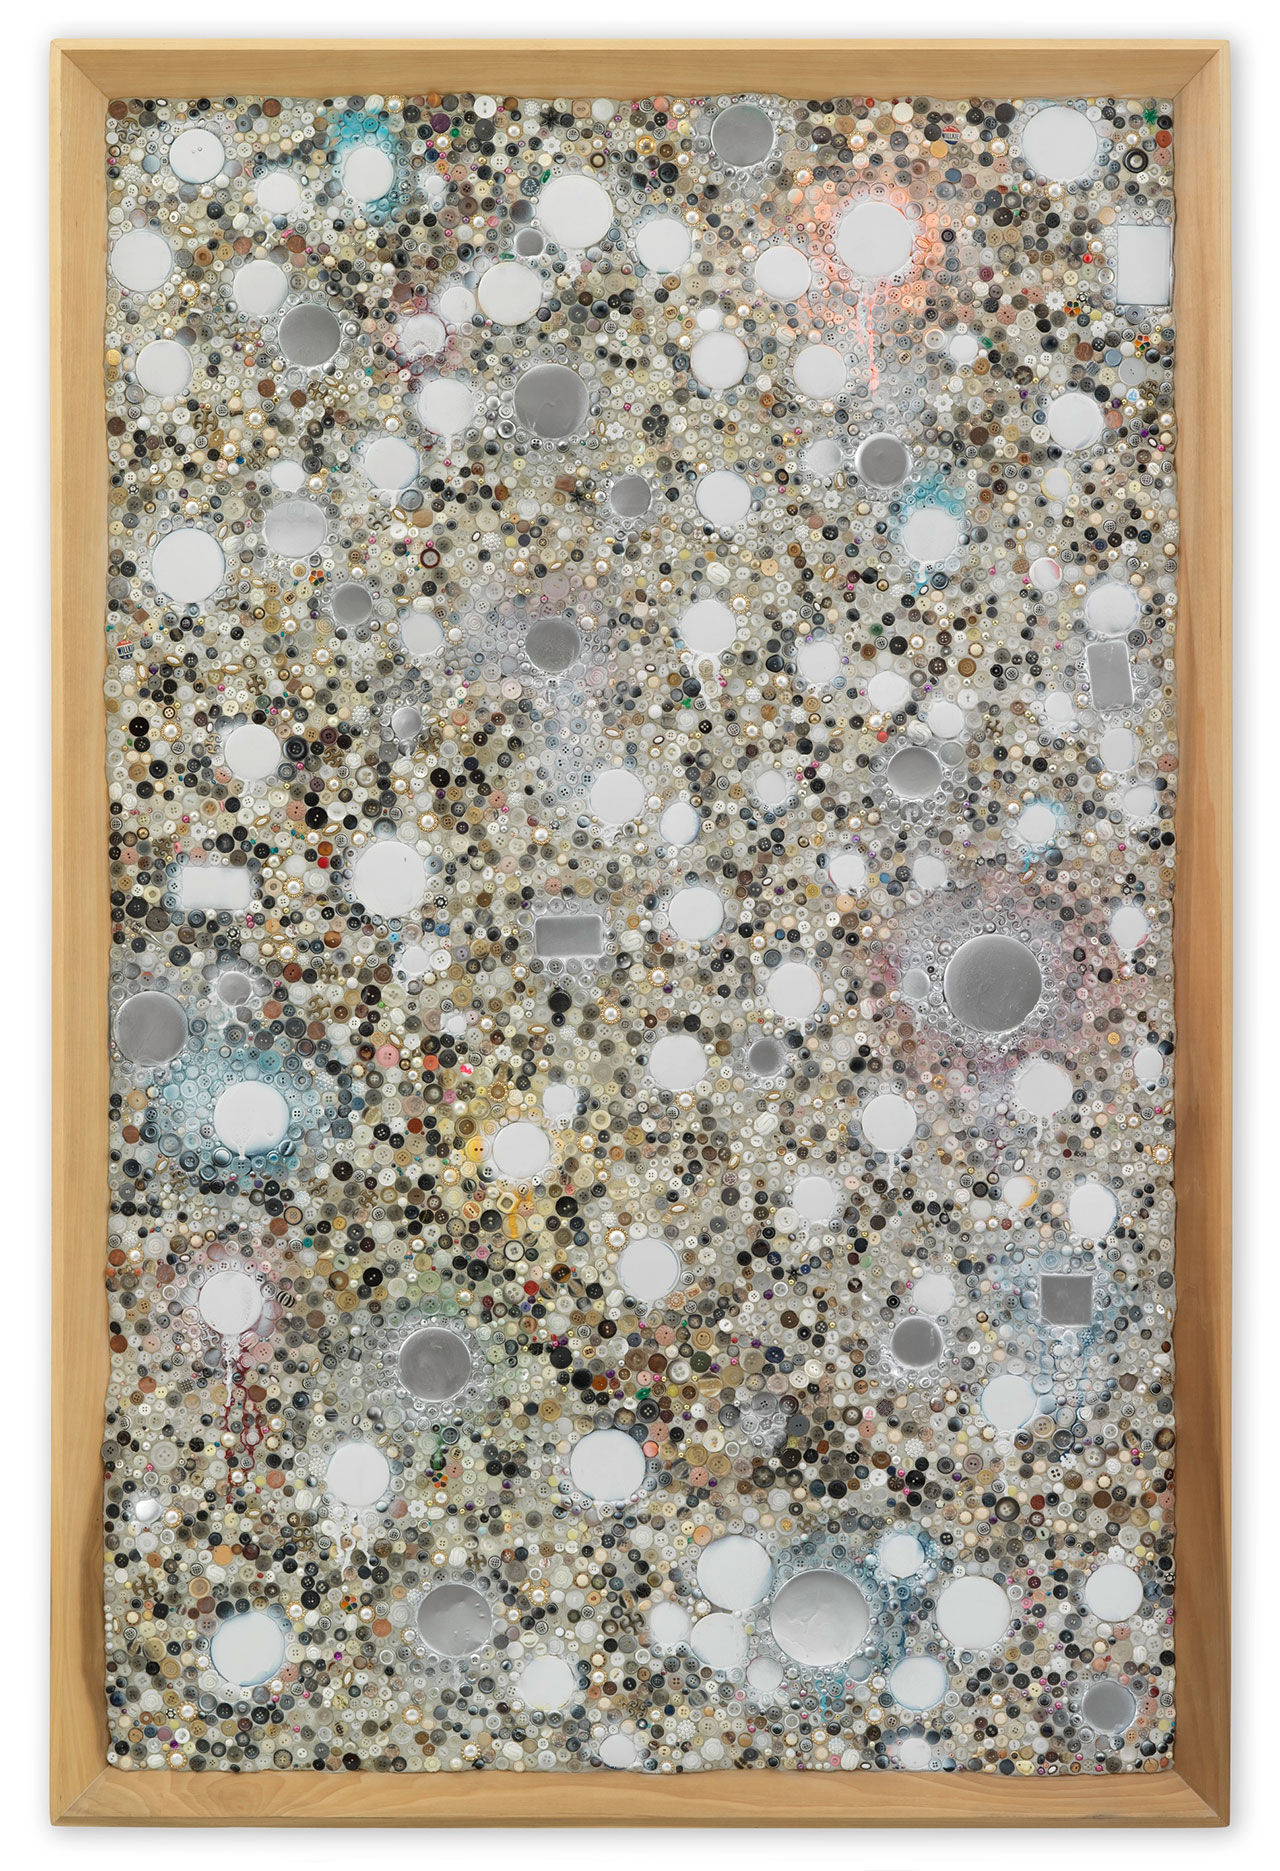 Mike Kelley, Memory Ware Flat #27, 2001. Mixed media on wood panel. 178 x 117.3 x 10 cm / 70 1/8 x 46 1/8 x 3 7/8 in. Art © Mike Kelley Foundation for the Arts. All Rights Reserved / Licensed by VAGA, New York, NY. Private Collection. Courtesy the Foundation and Hauser & Wirth. Photo by Stefan Altenburger Photography Zürich.